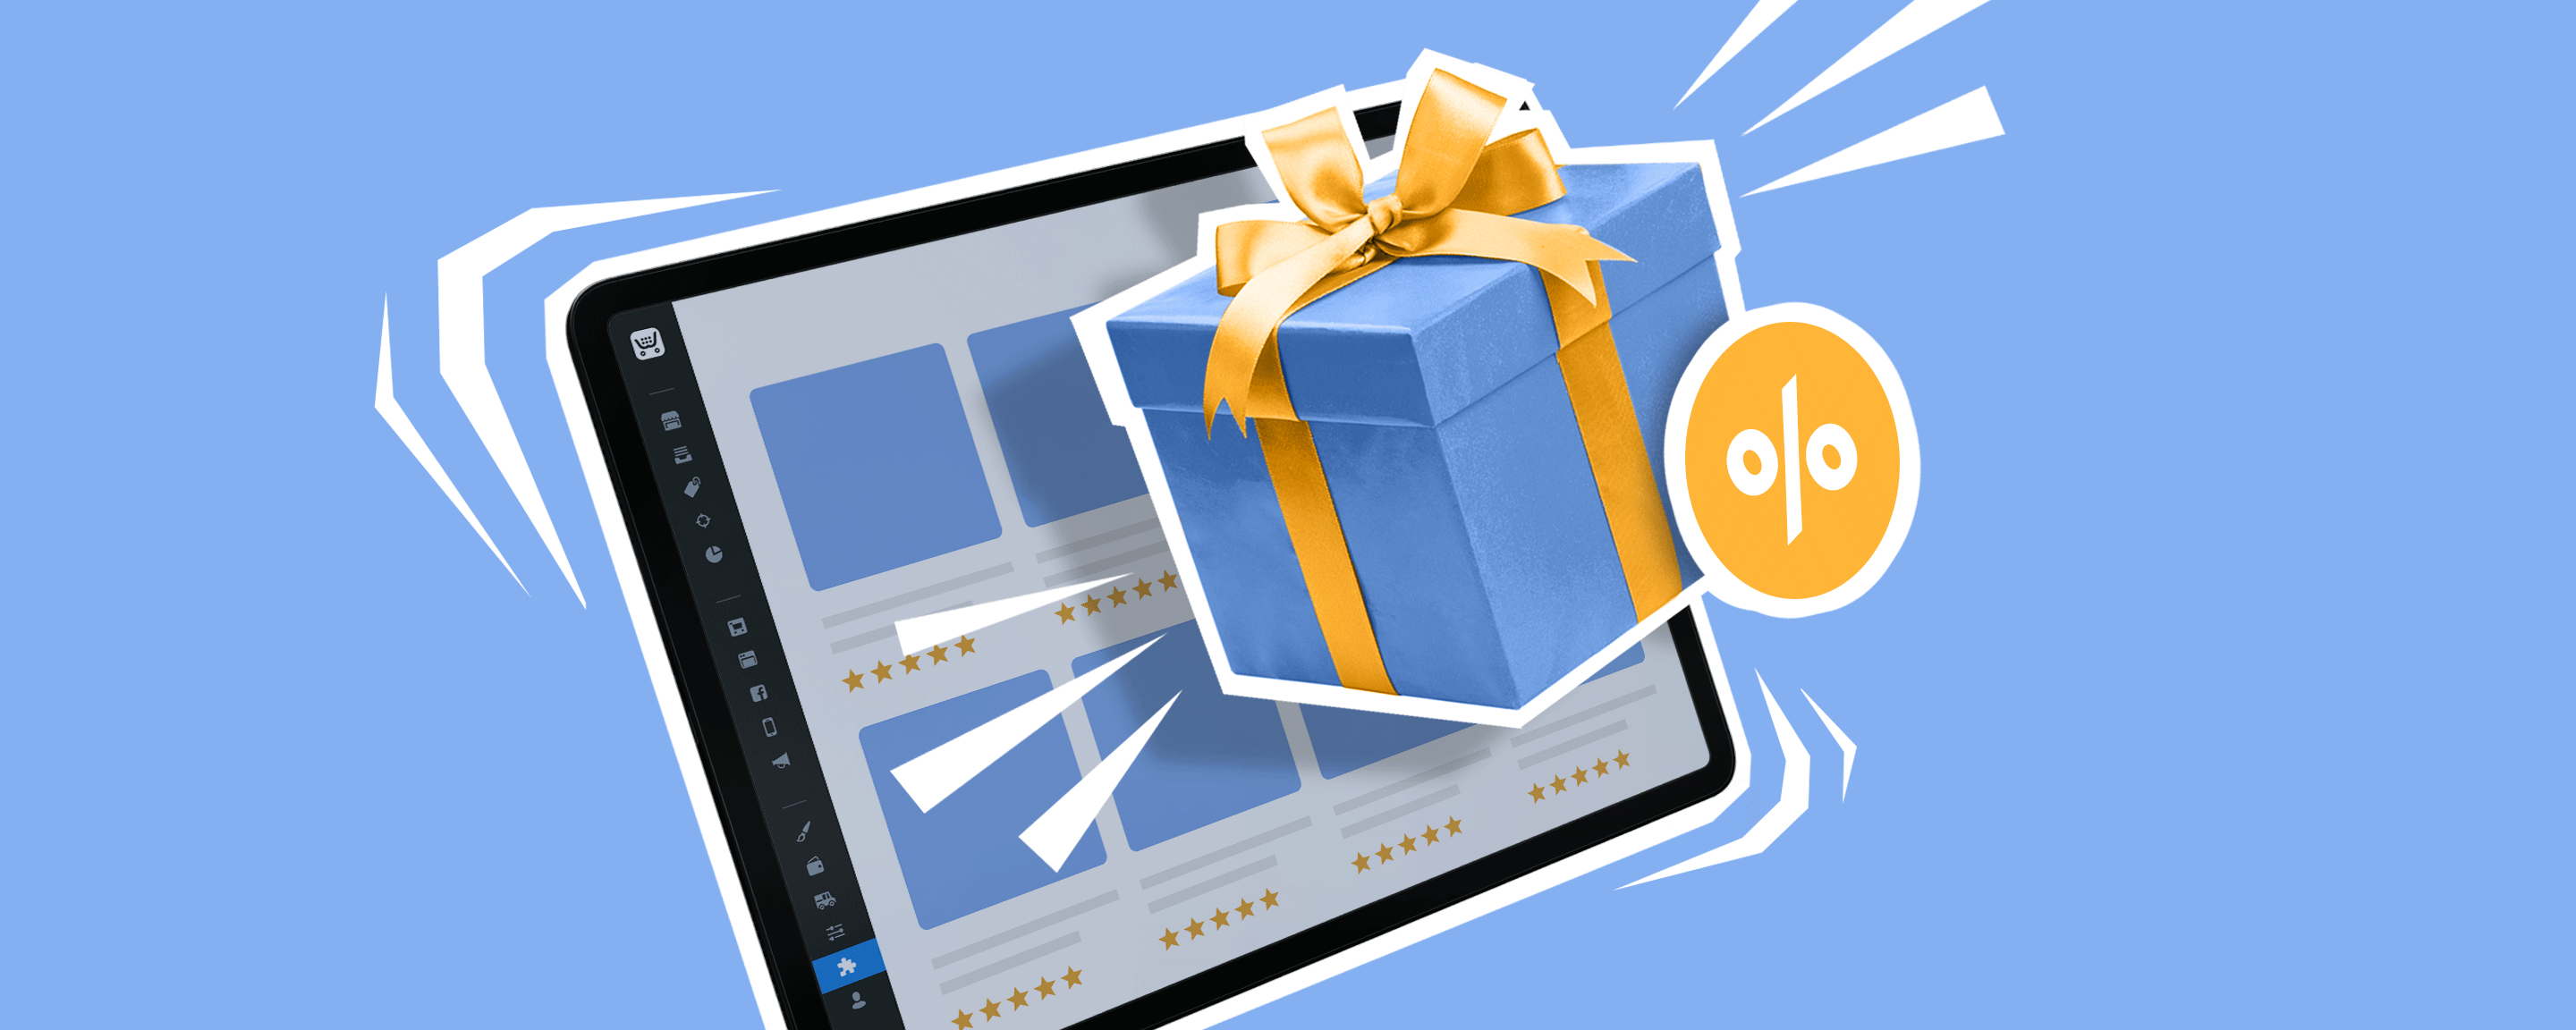 The-Best-Ecwid-Apps-for-Boosting-Sales-This-Holiday-Season